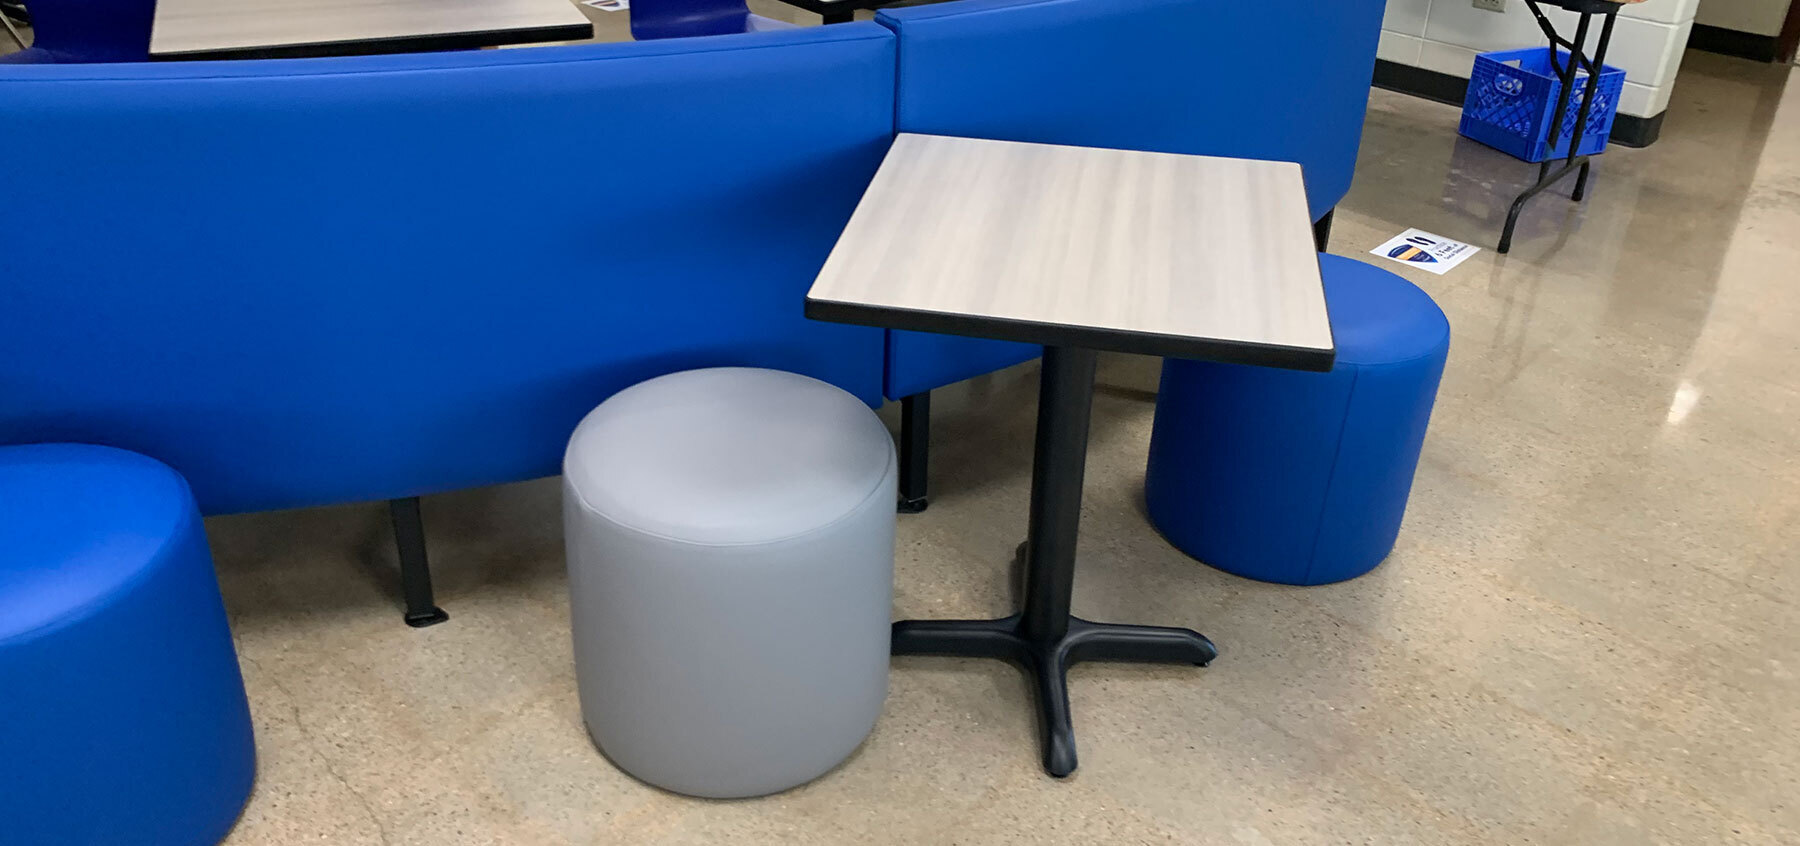 Plymold has multiple tables, chairs and booths available for your space--perfect for school cafeteria, restaurant dining room, business break room and many other spaces.  Selecting the right table top for your cafeteria, restaurant, break room, or bar is not only crucial for your establishment design,  but also has a big impact on function and flow. Whether it be vinyl edge, wood edge, or other communal table options -- Plymold has plenty of options.